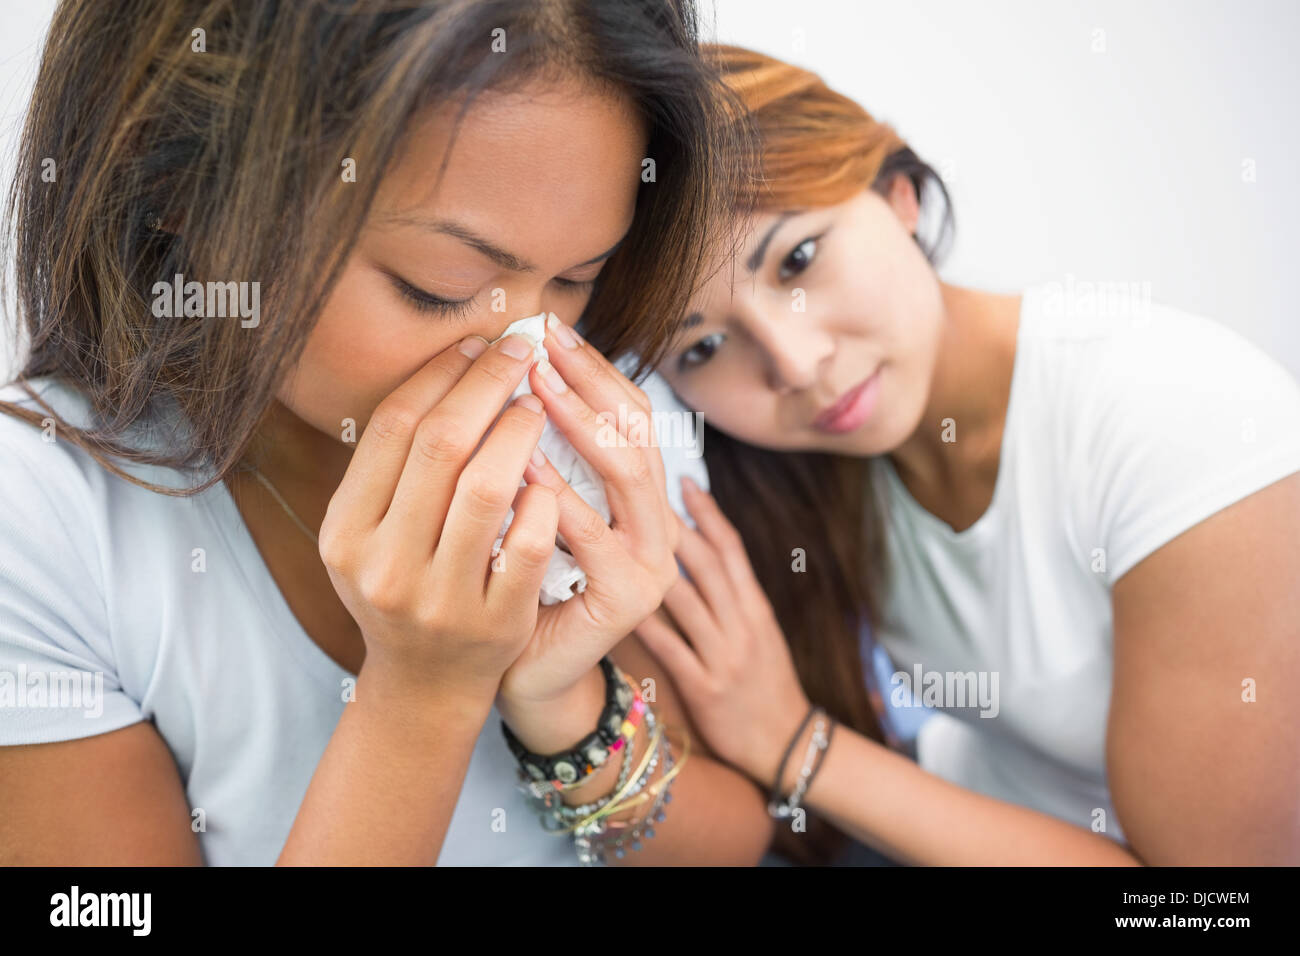 Sad beautiful woman crying while being consoled by her sister - Stock Image